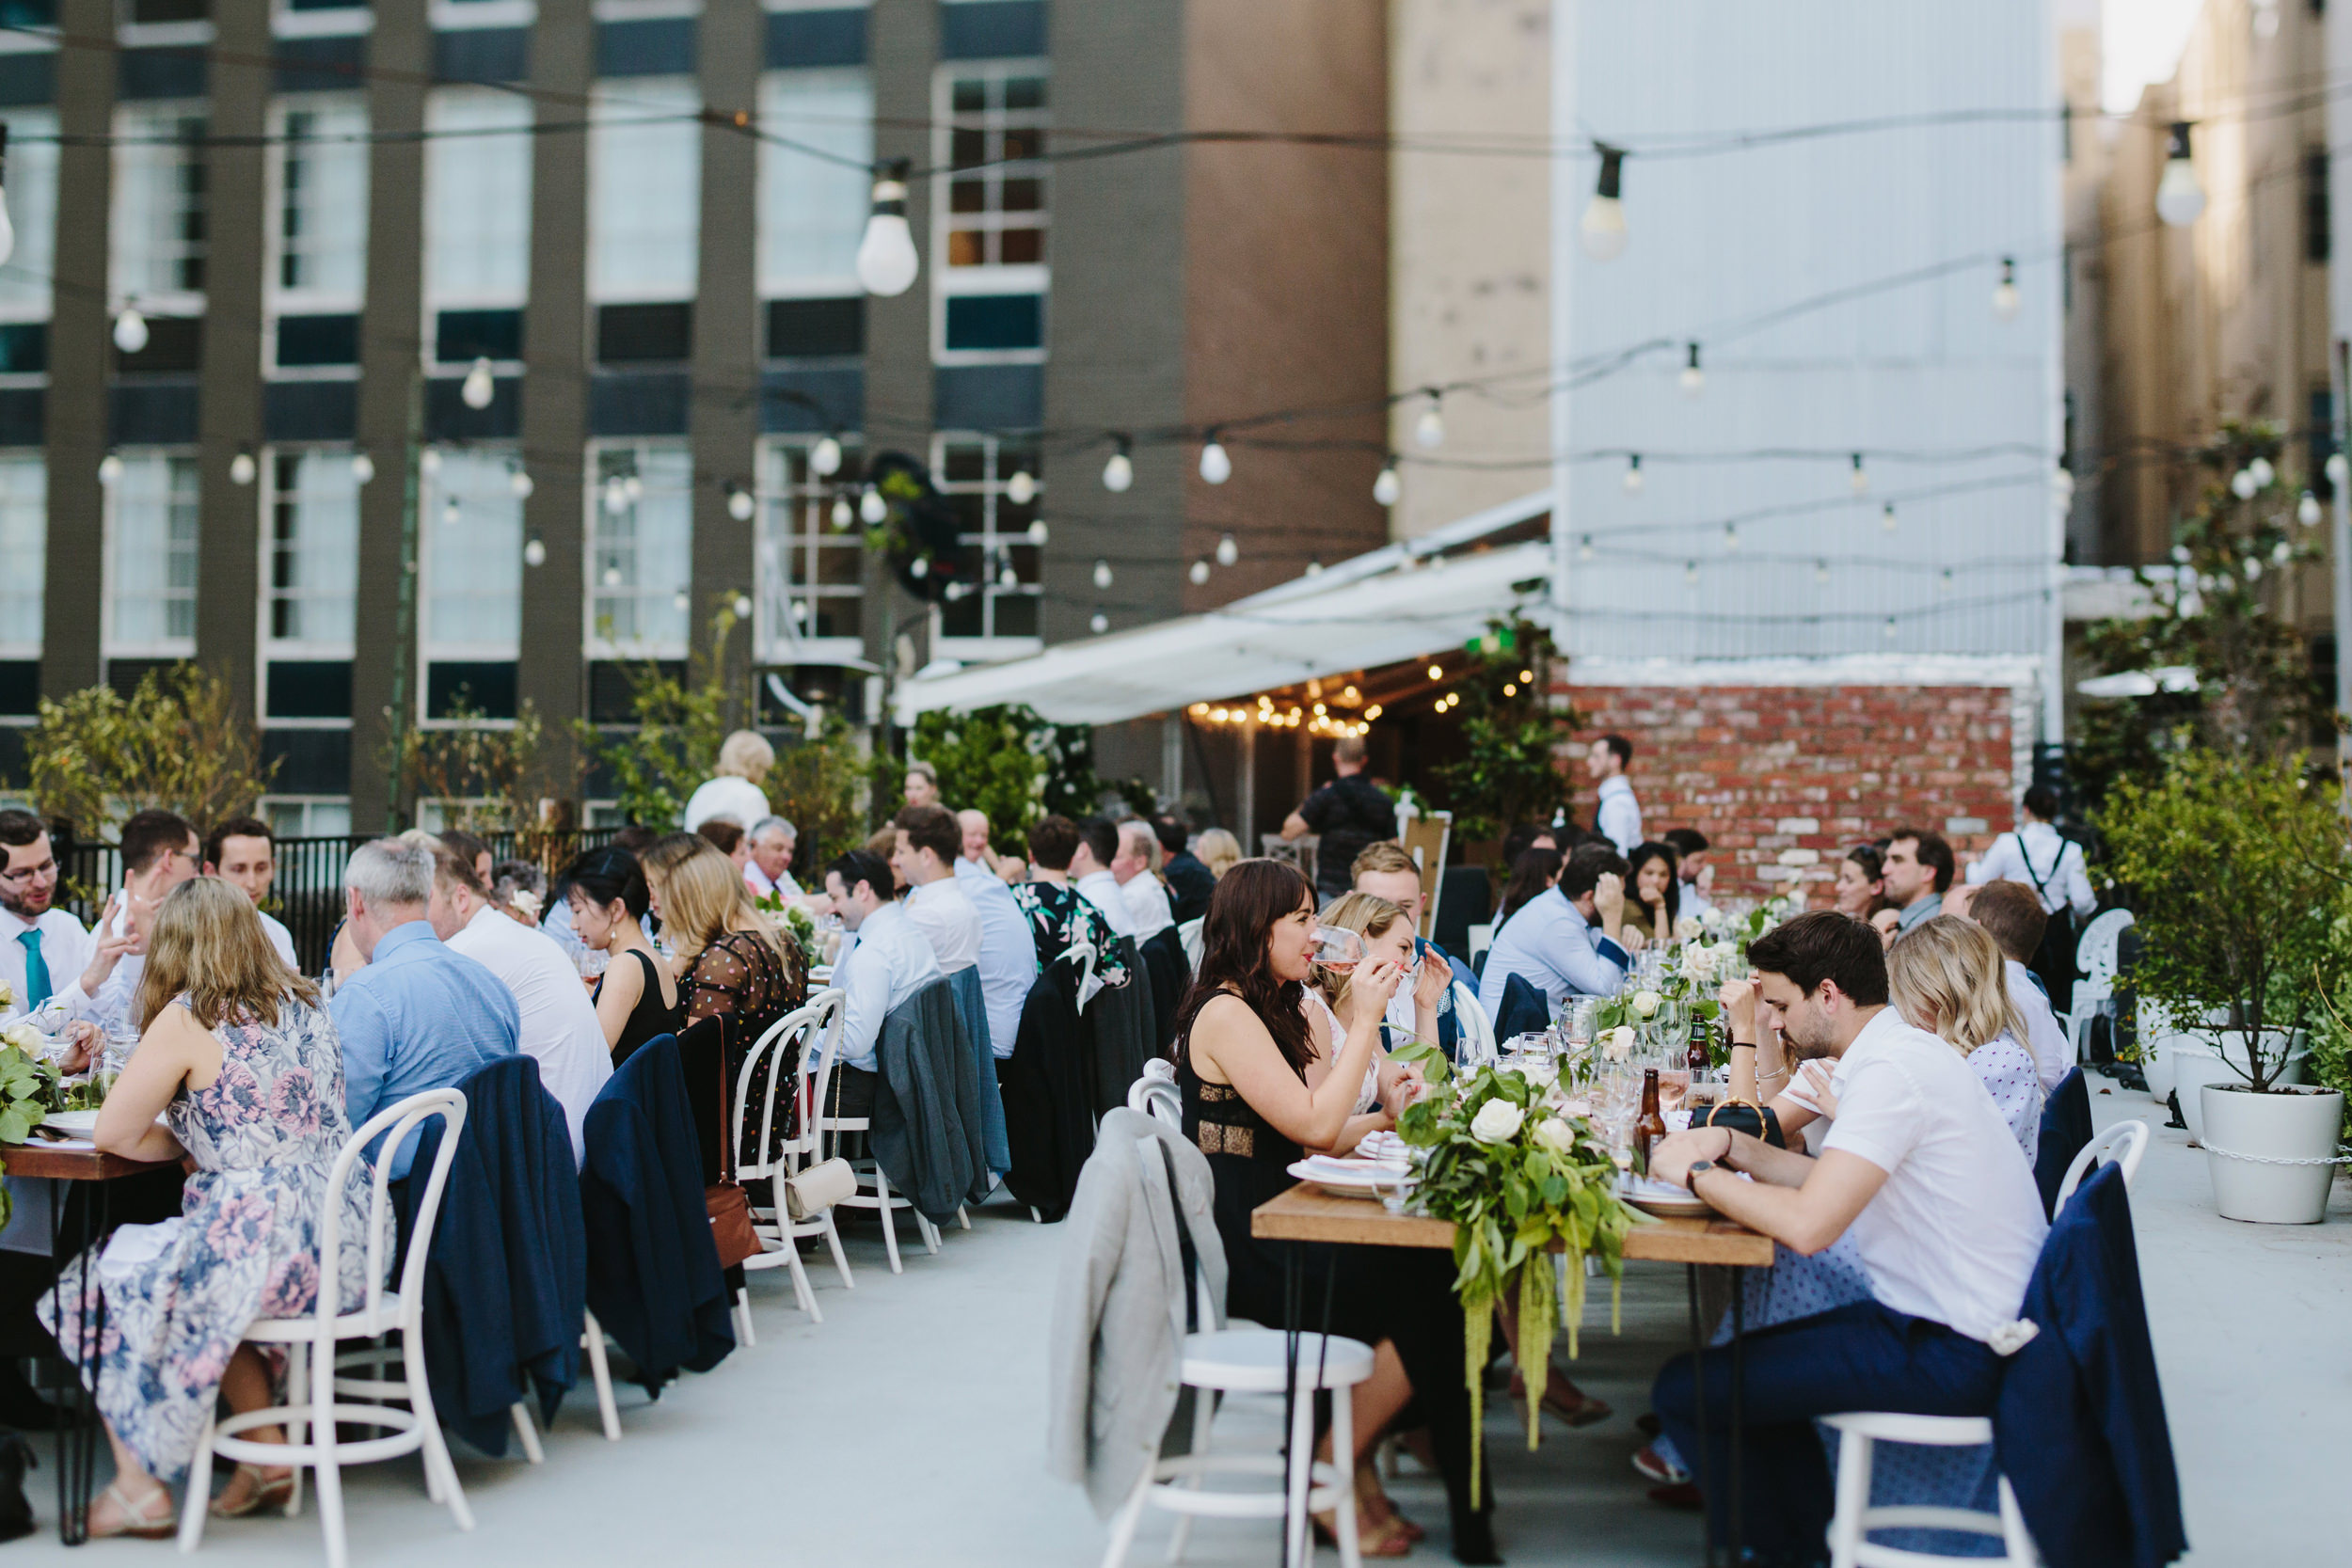 Melbourne_City_Rooftop_Wedding_Tyson_Brigette088.JPG